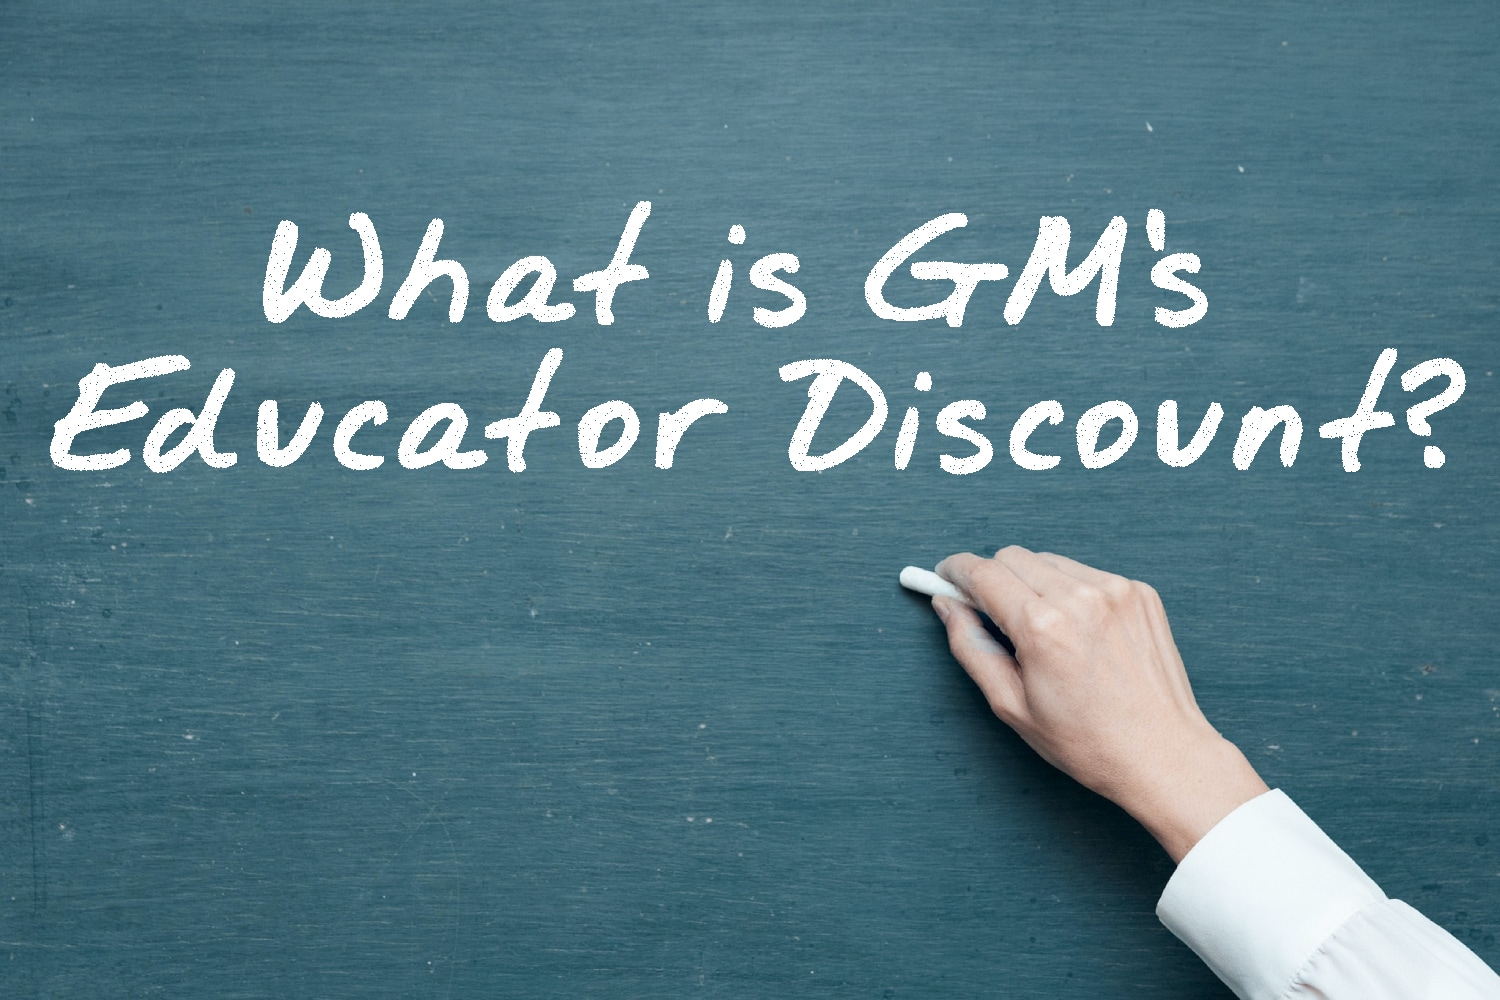 """Writing on Chalkboard """"What is GM's Educator Discount?"""""""